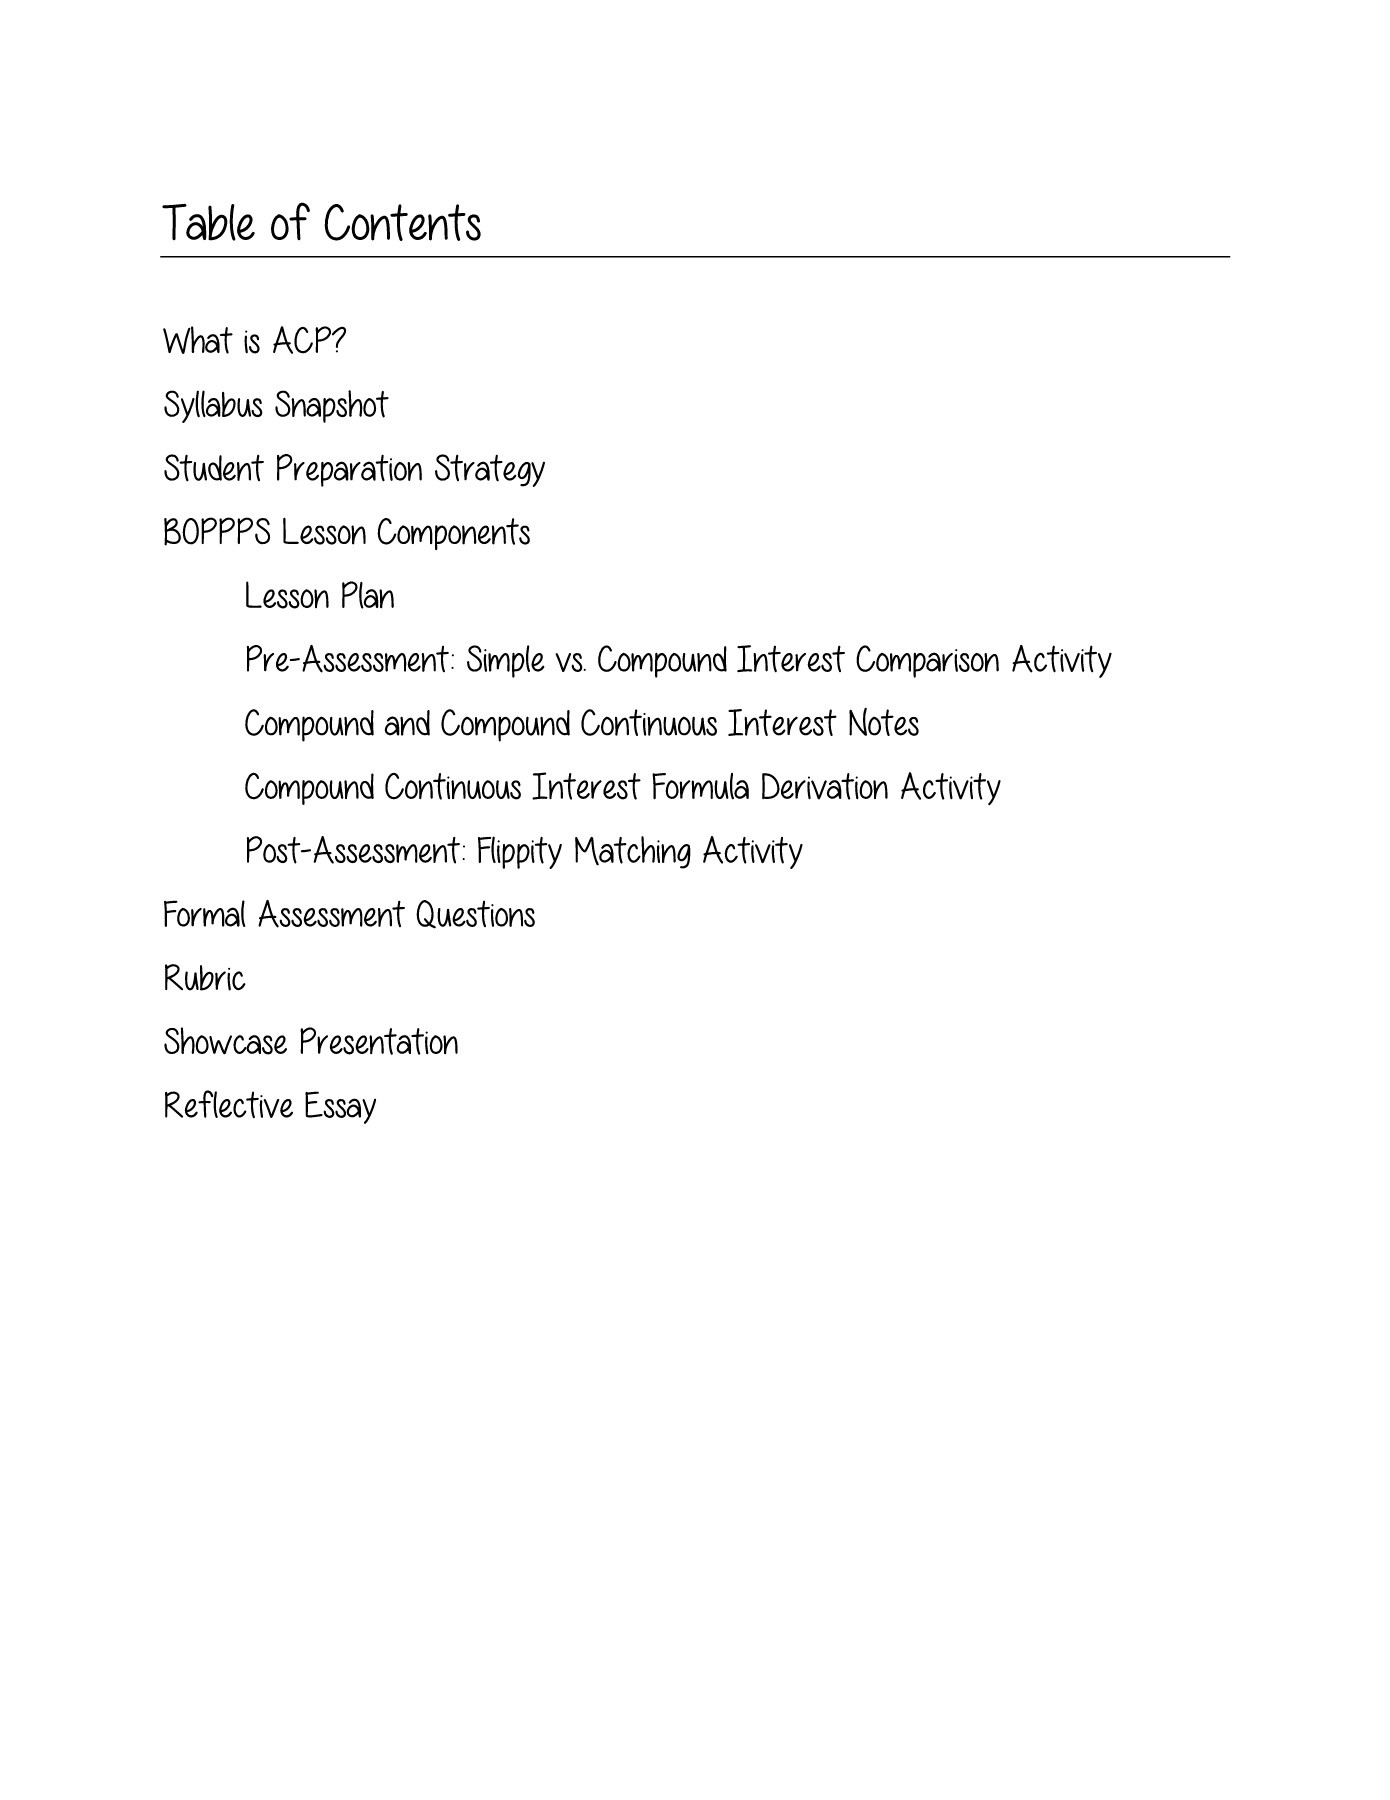 Simple and Compound Interest Worksheet Merged Pdf Pages 1 29 Text Version